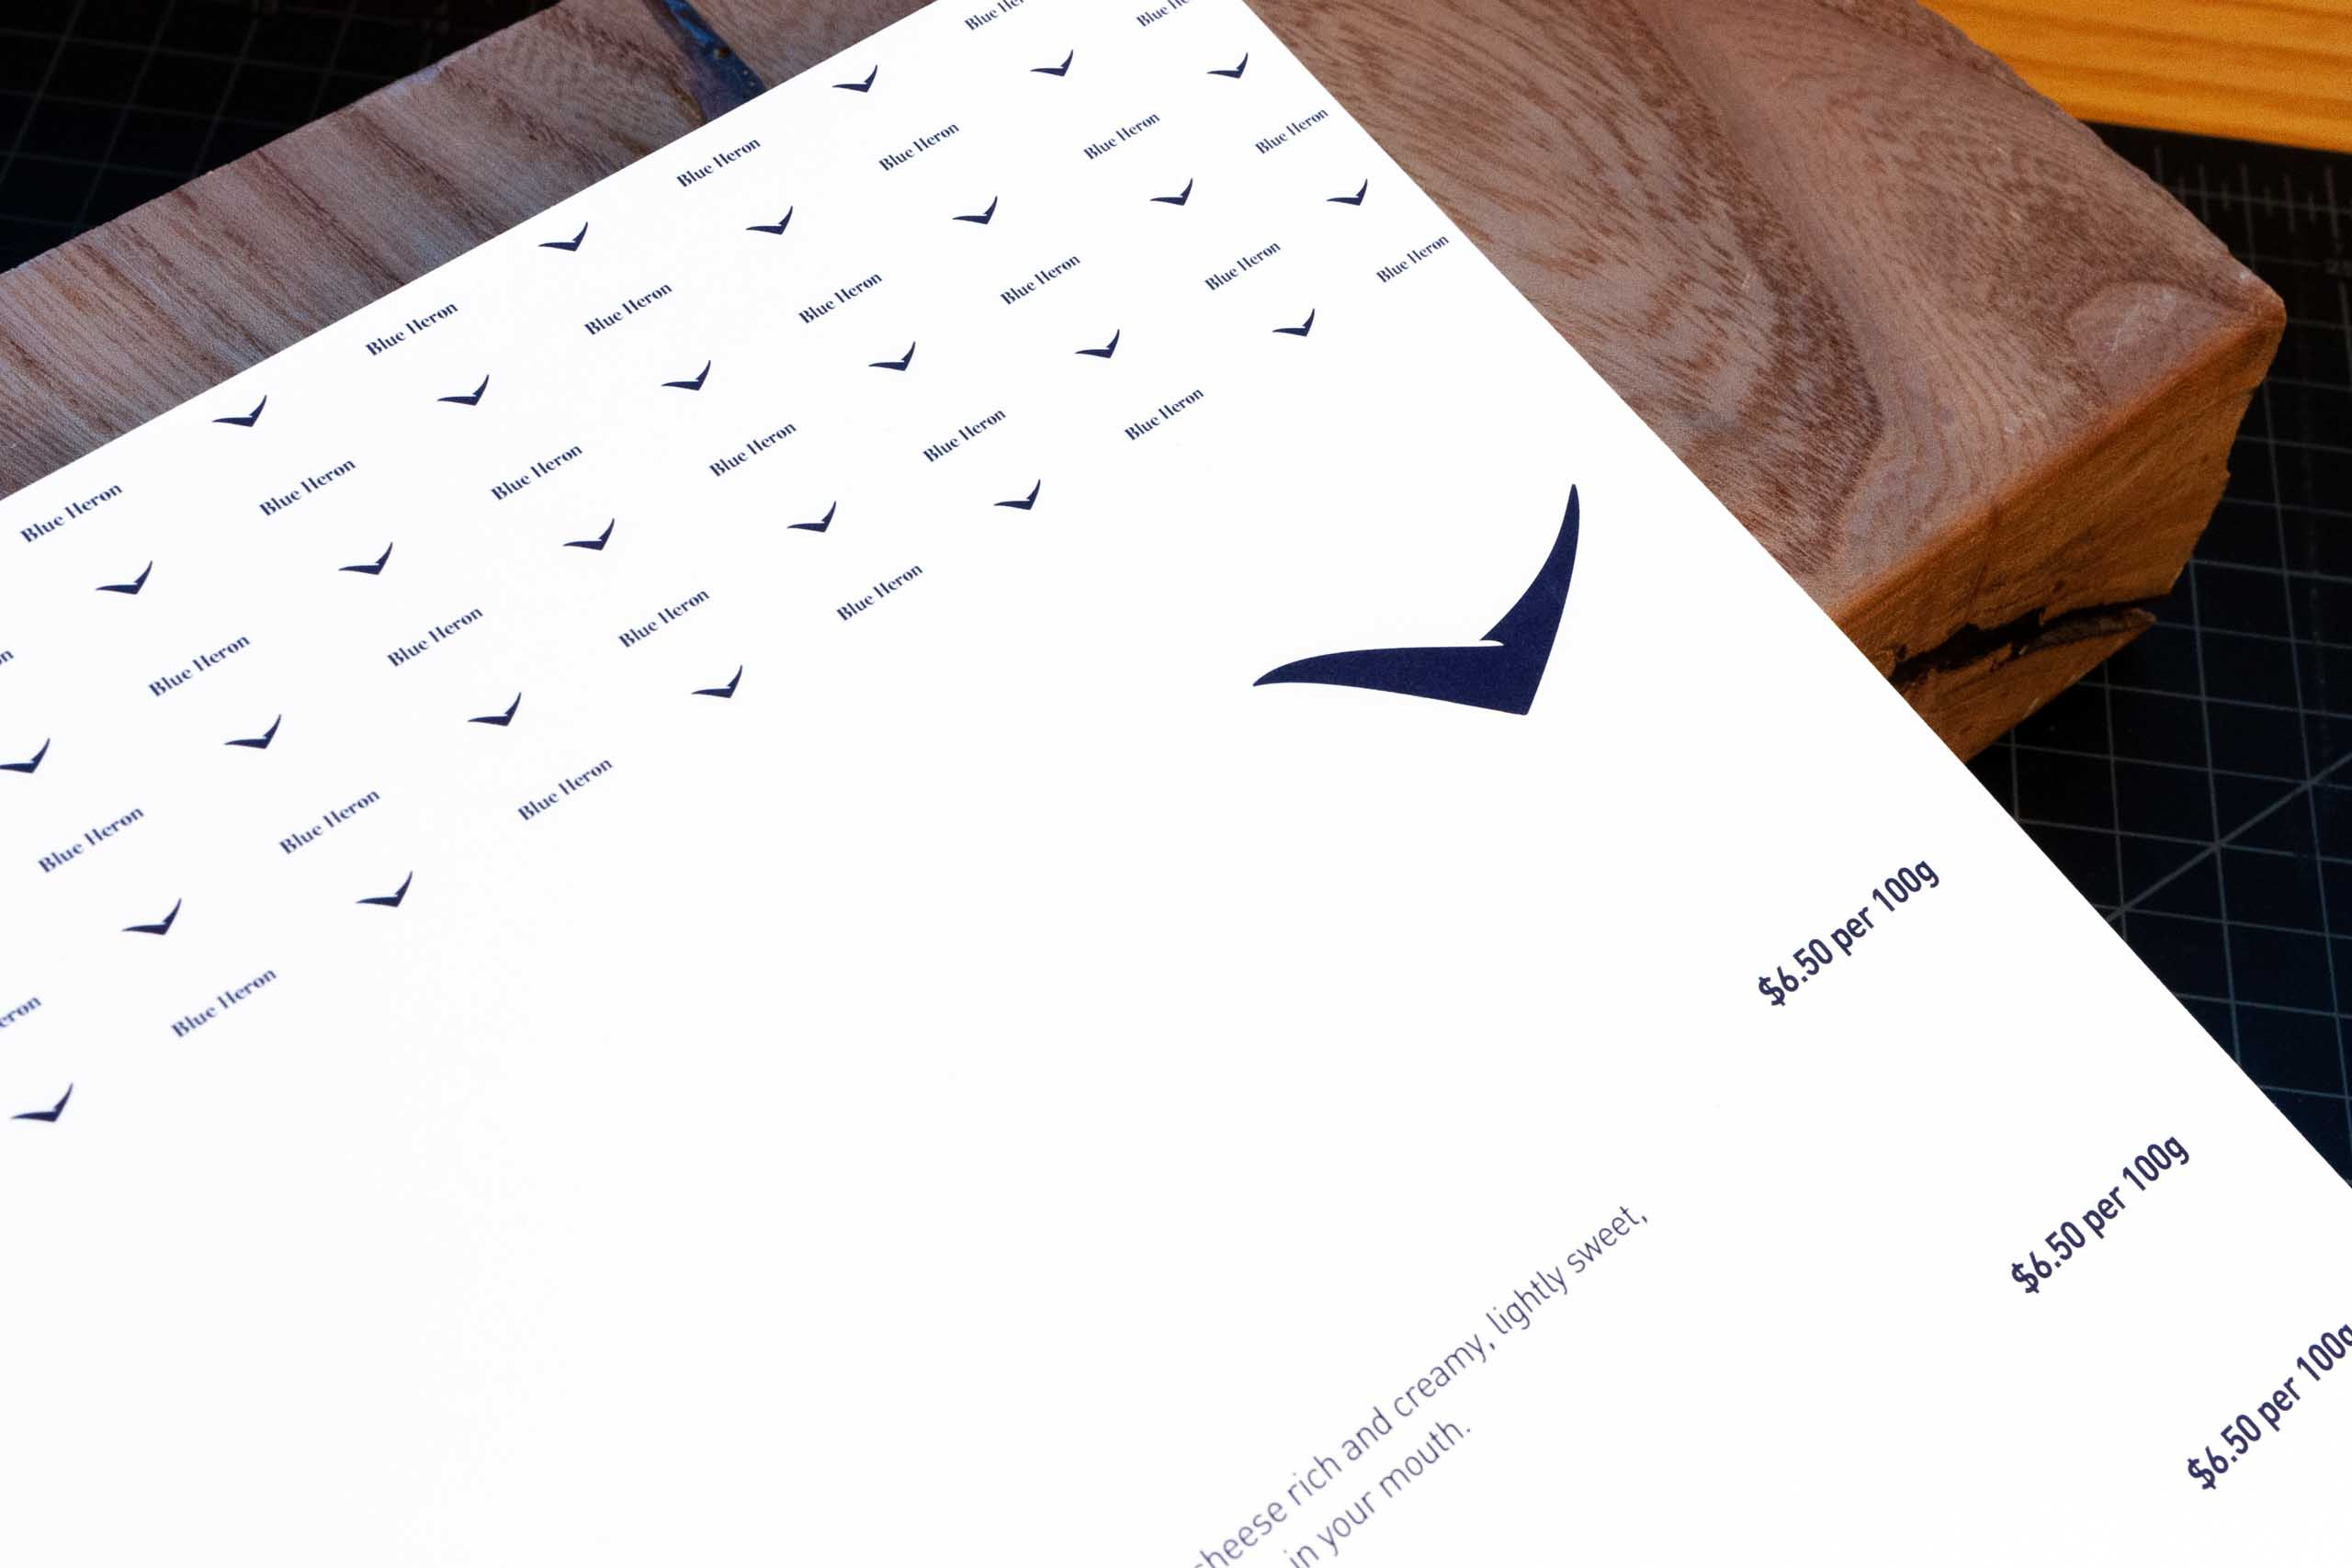 Top corner of the product menu showing Blue Heron logo and brand pattern — by Yagnyuk.